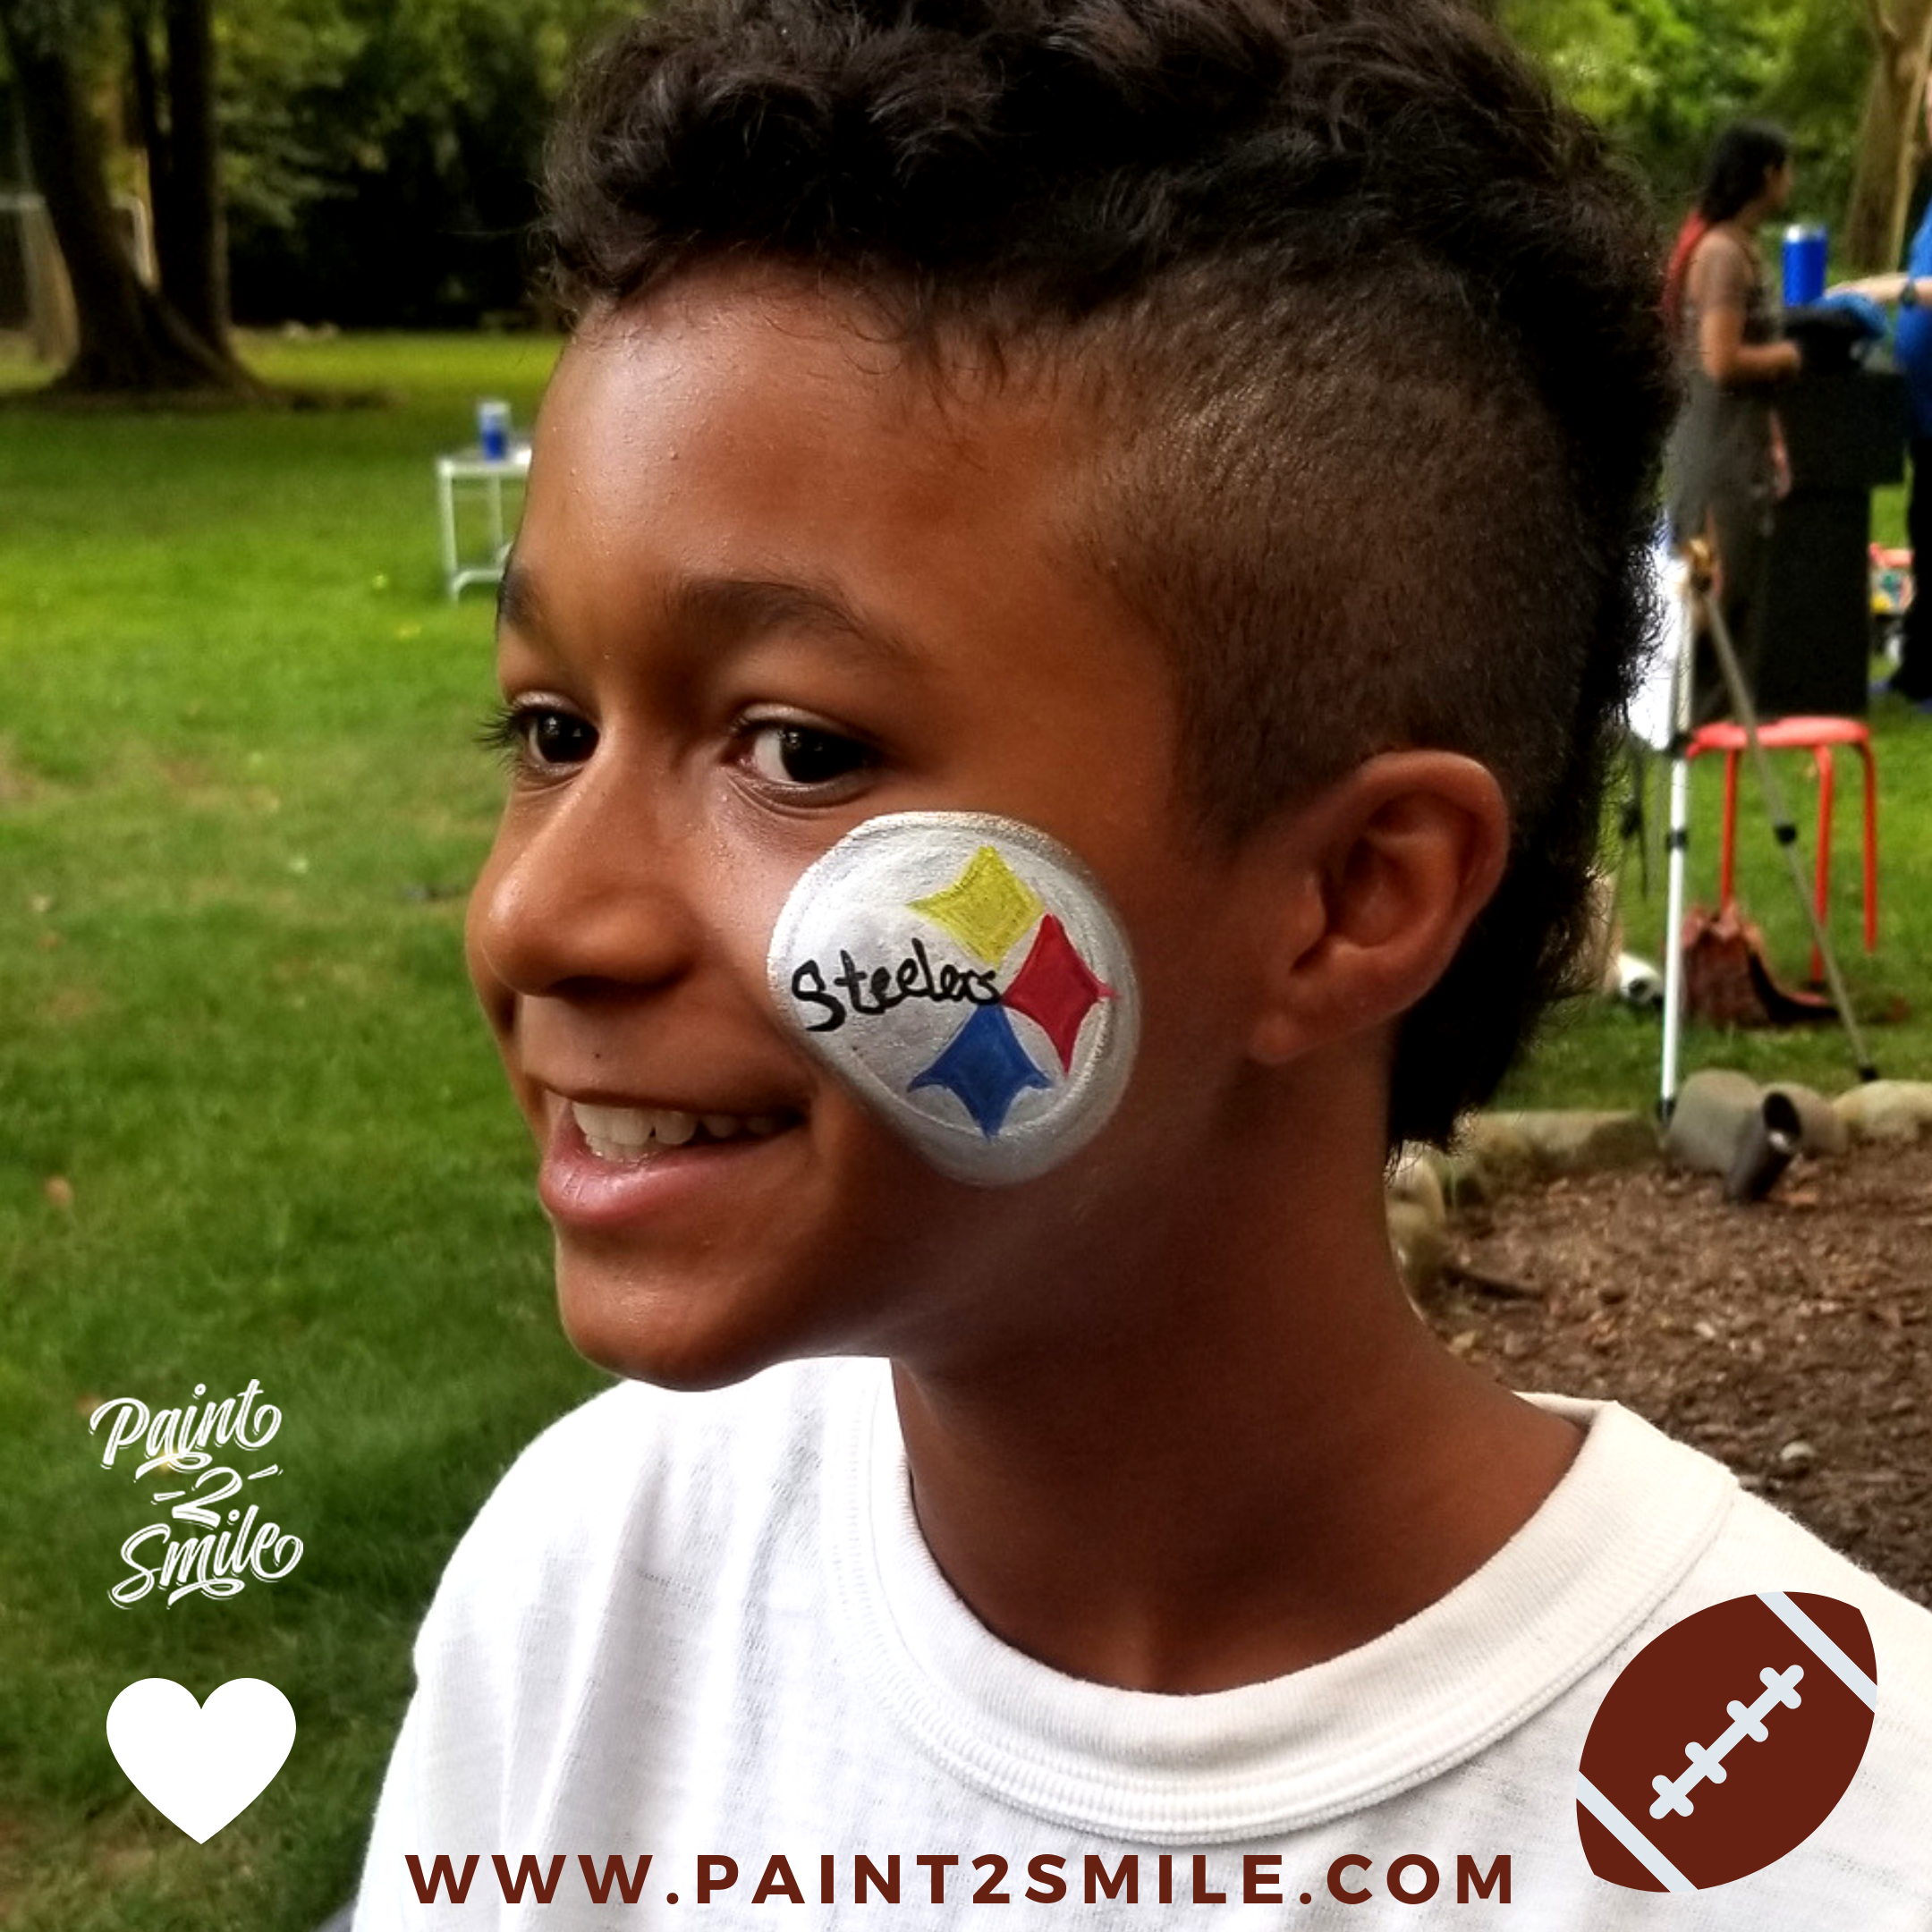 steelers face paint logo on little boy